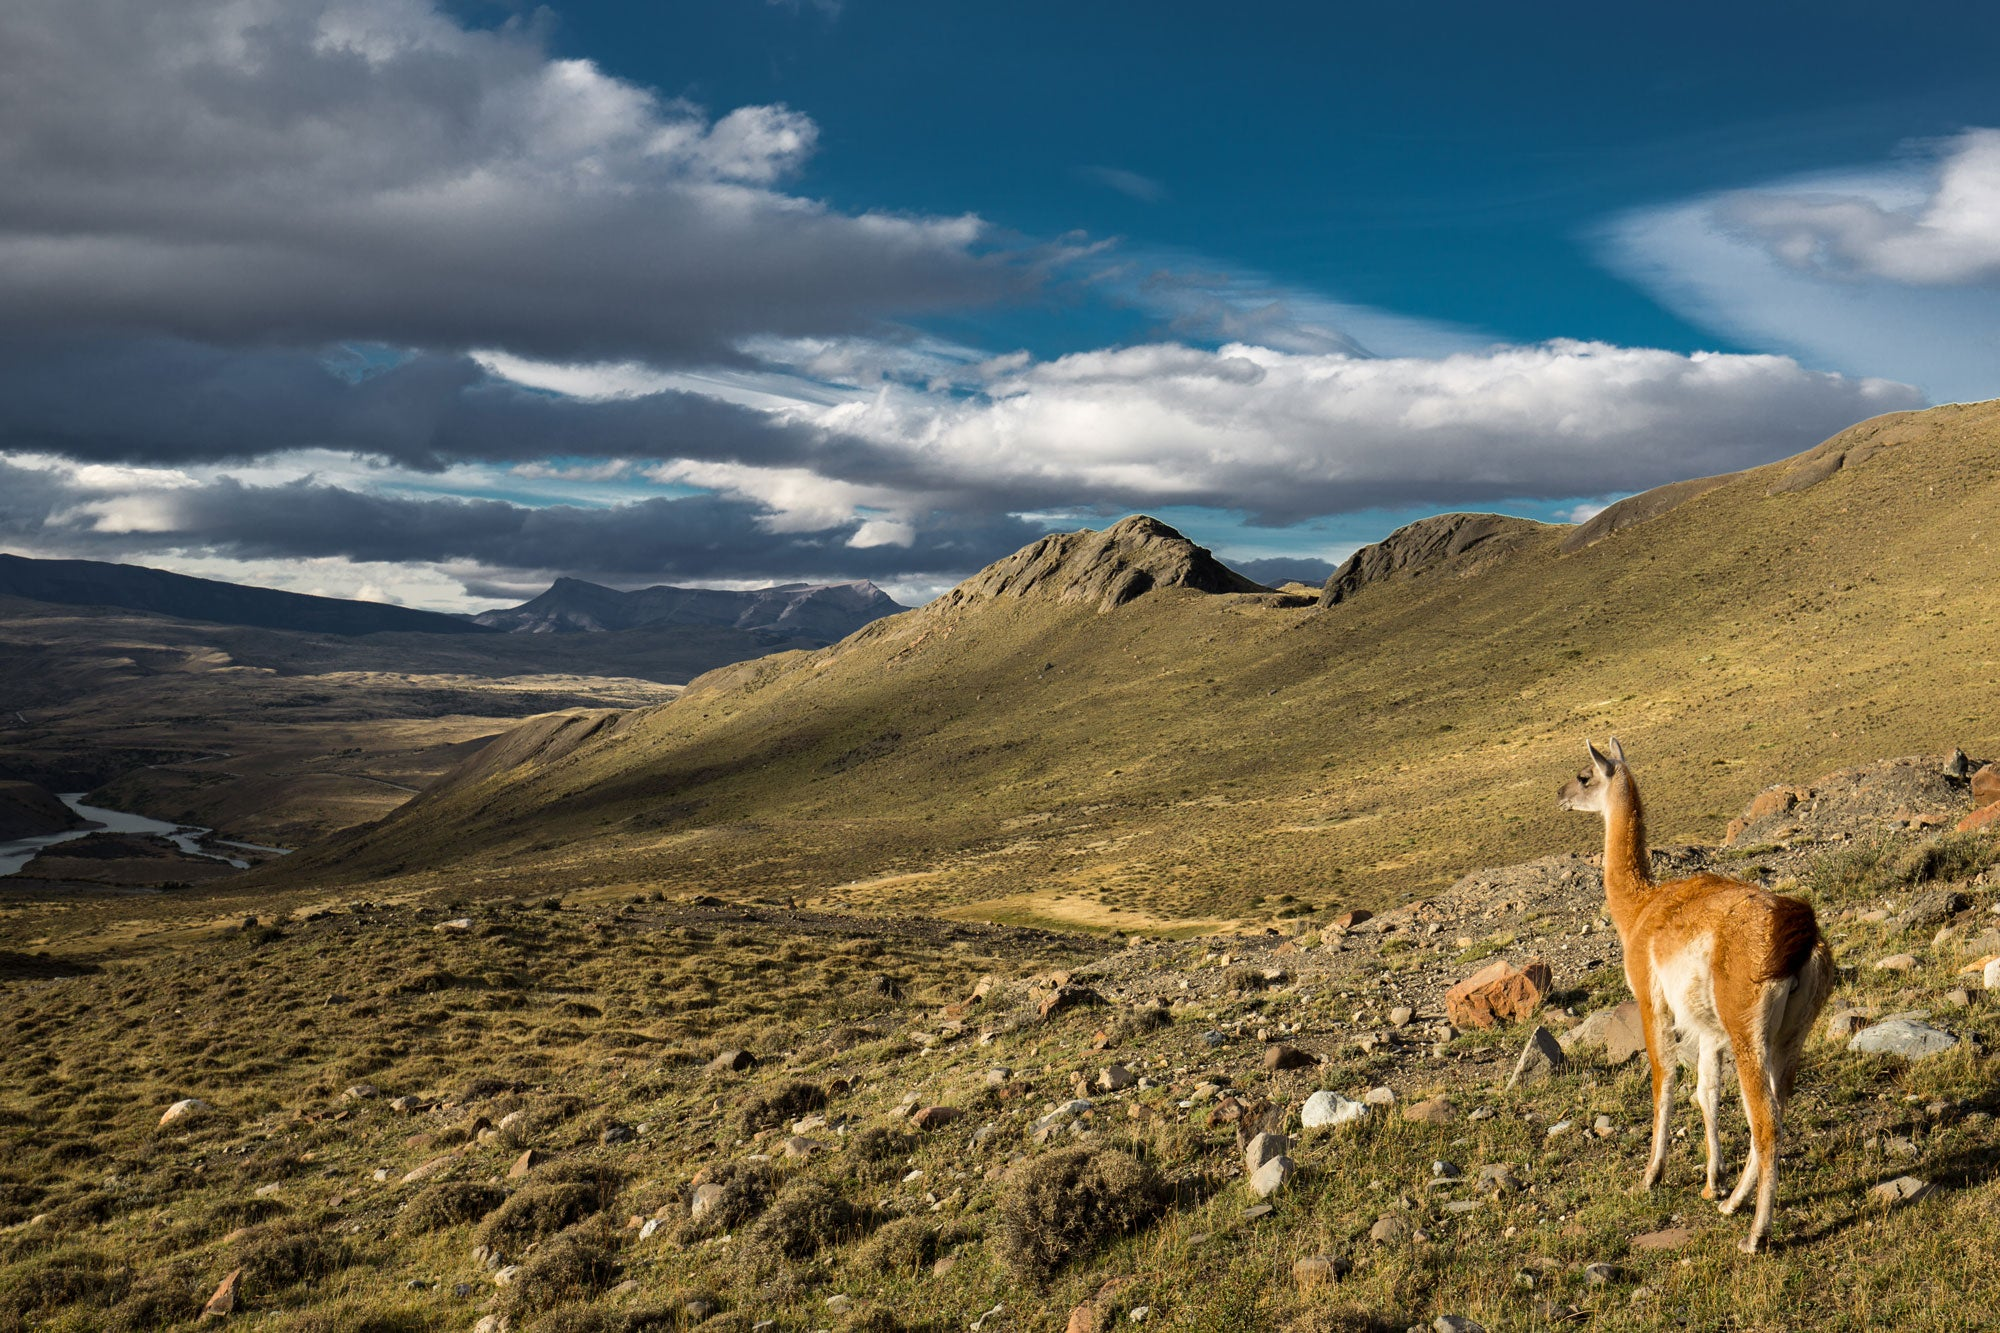 a-guanaco-looking-out-at-the-patagonian-landscape